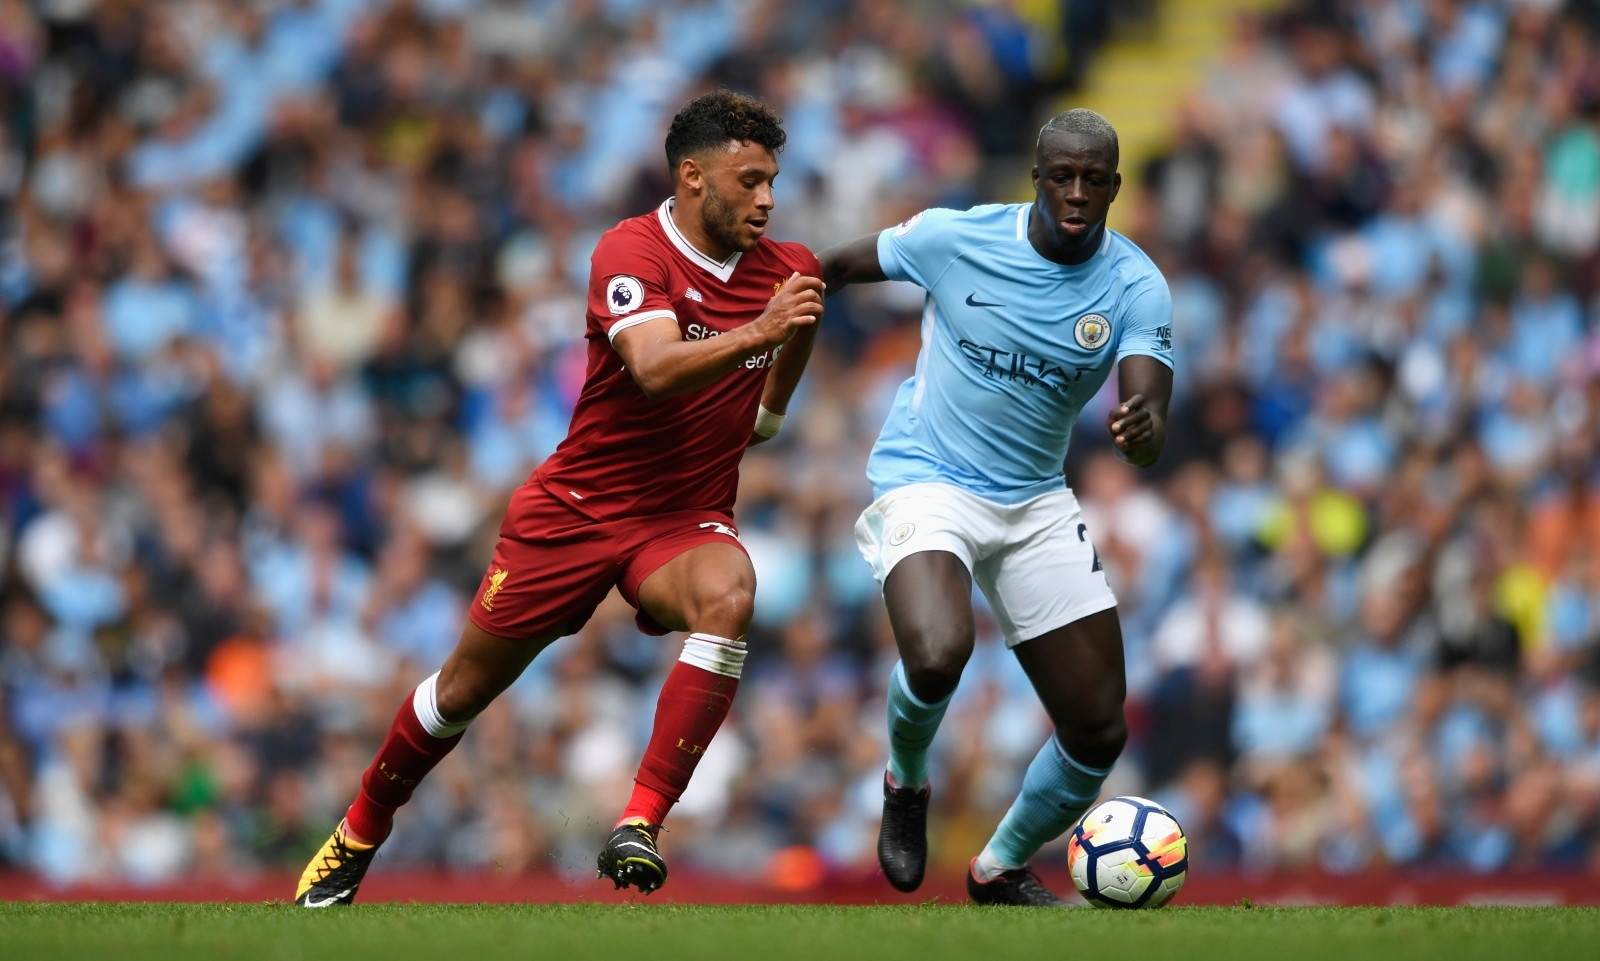 Alex Oxlade-Chamberlain and Benjamin Mendy